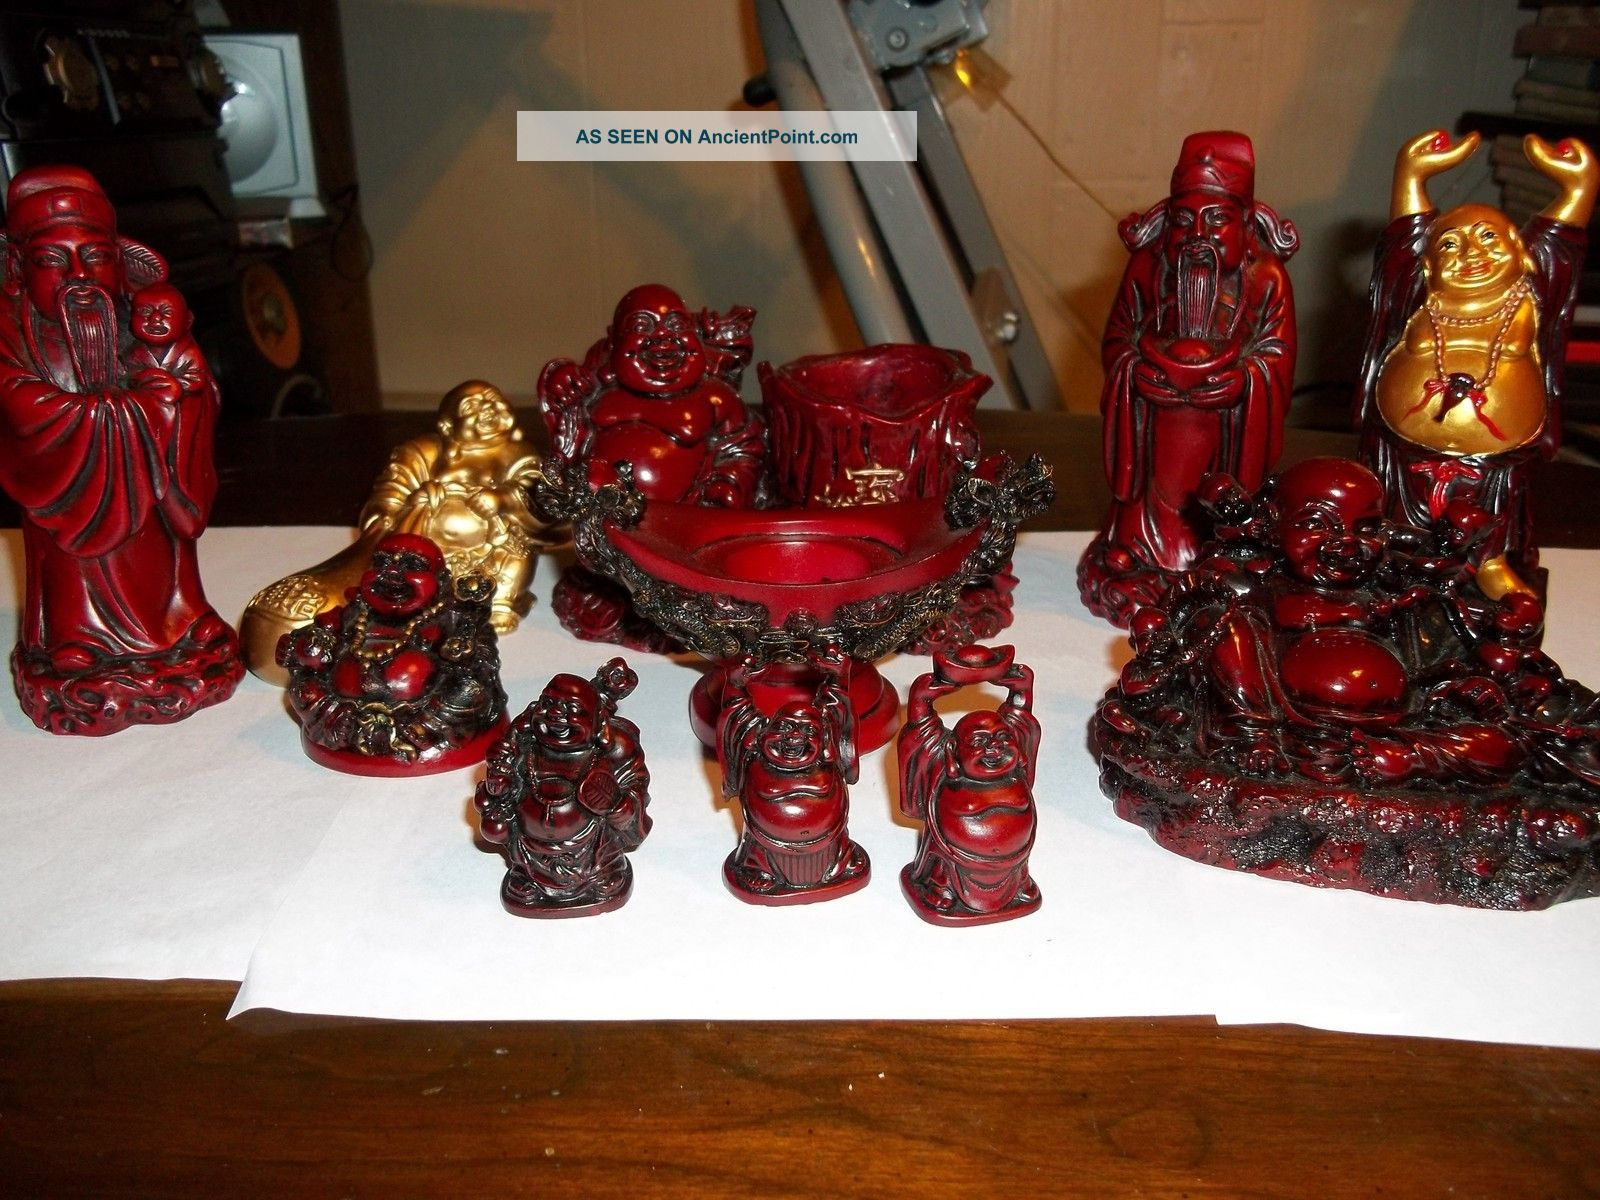 Chinese Tray & Buddhas Chinese Men 11 Pieces For Luck & More 12 Pieces Buddha photo